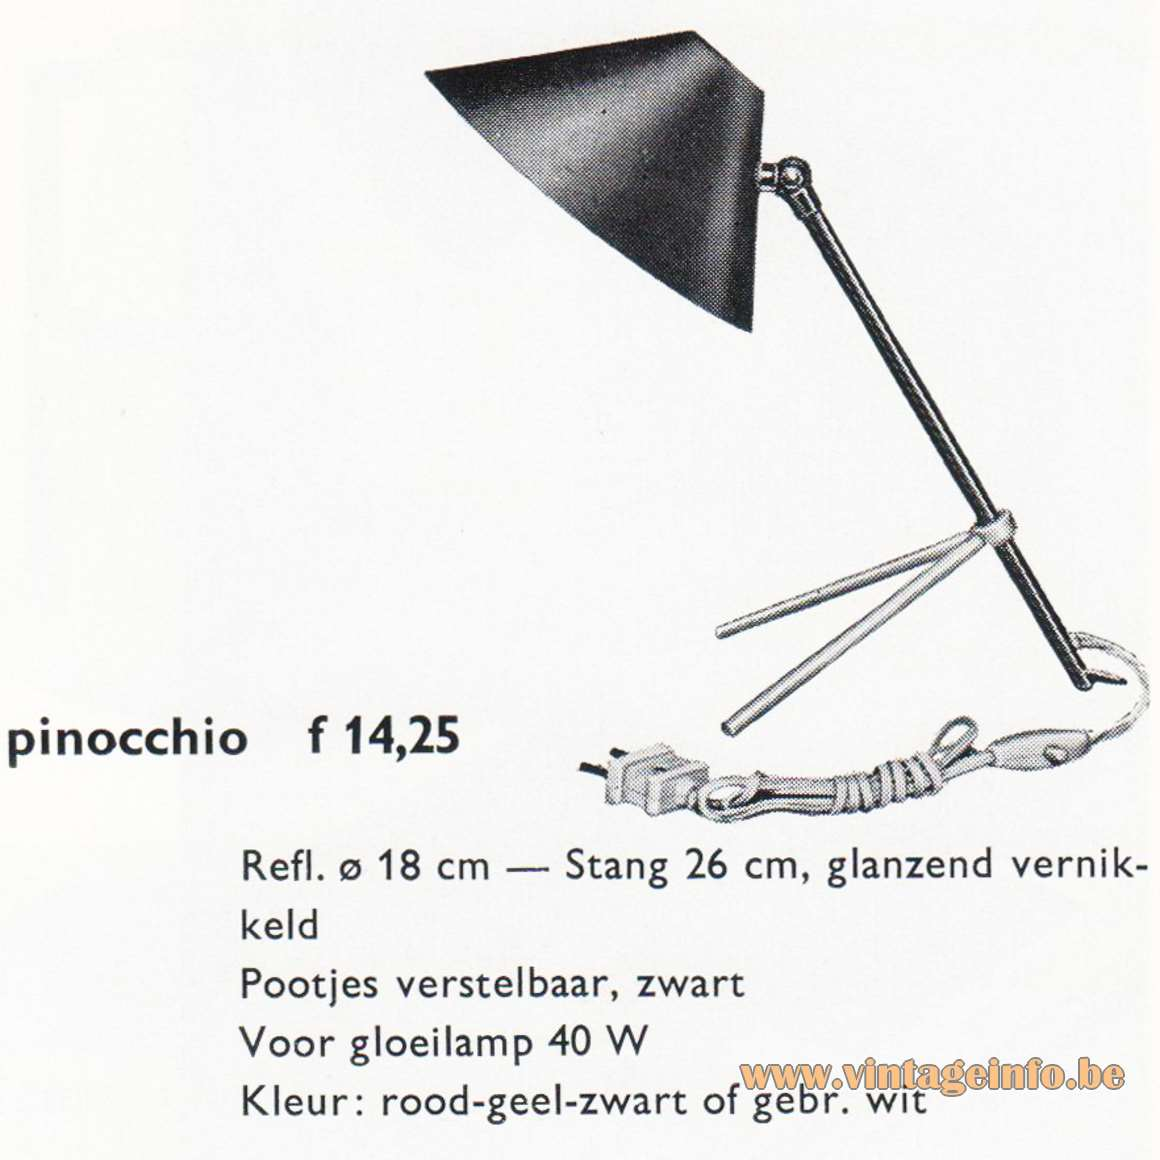 Hala Pinocchio Table Lamps - Catalogue 1967